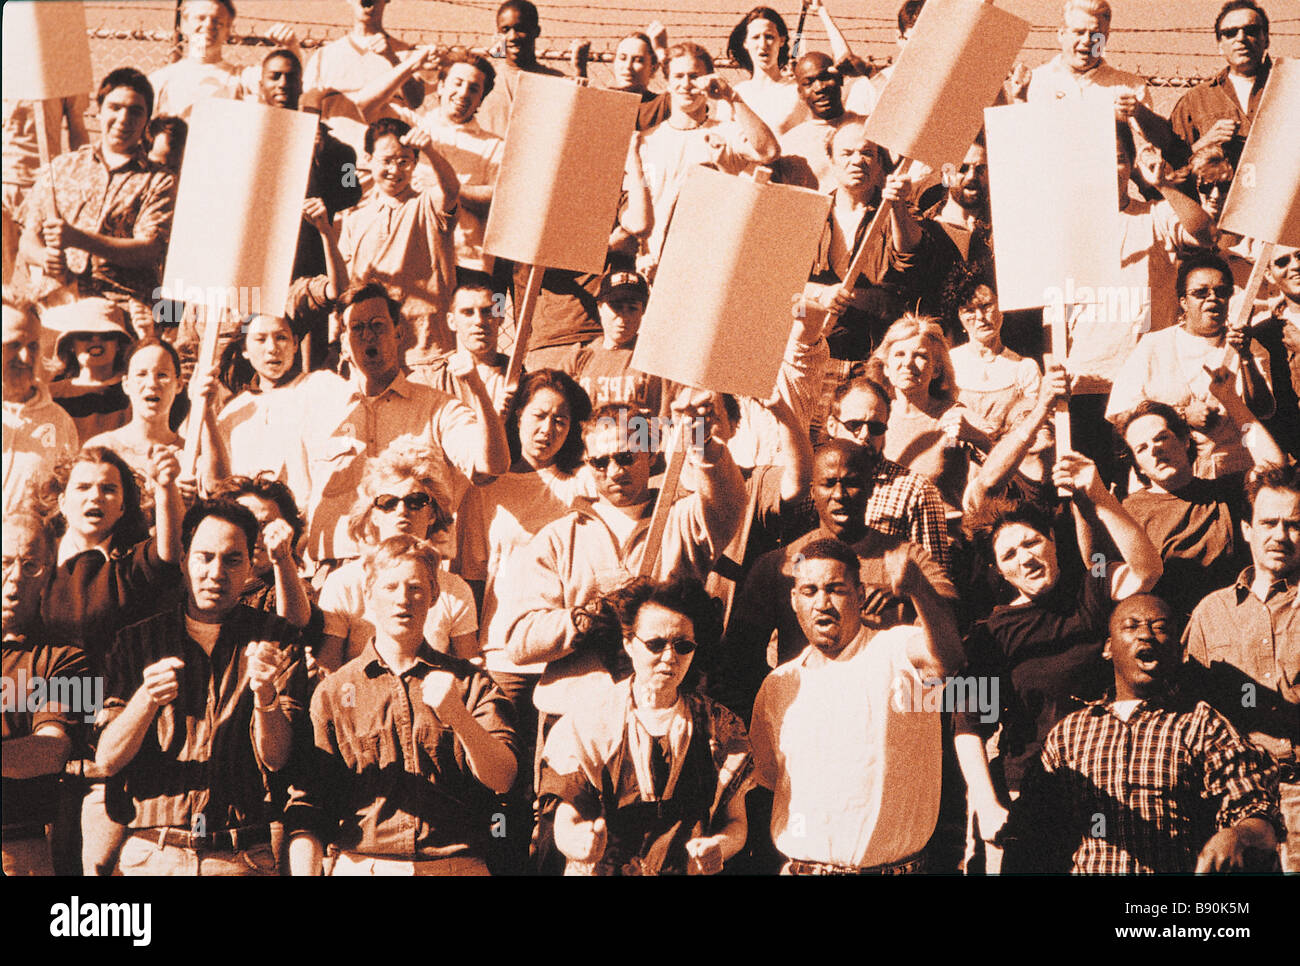 FL3461, FIRST LIGHT; Crowd waving placards - Stock Image